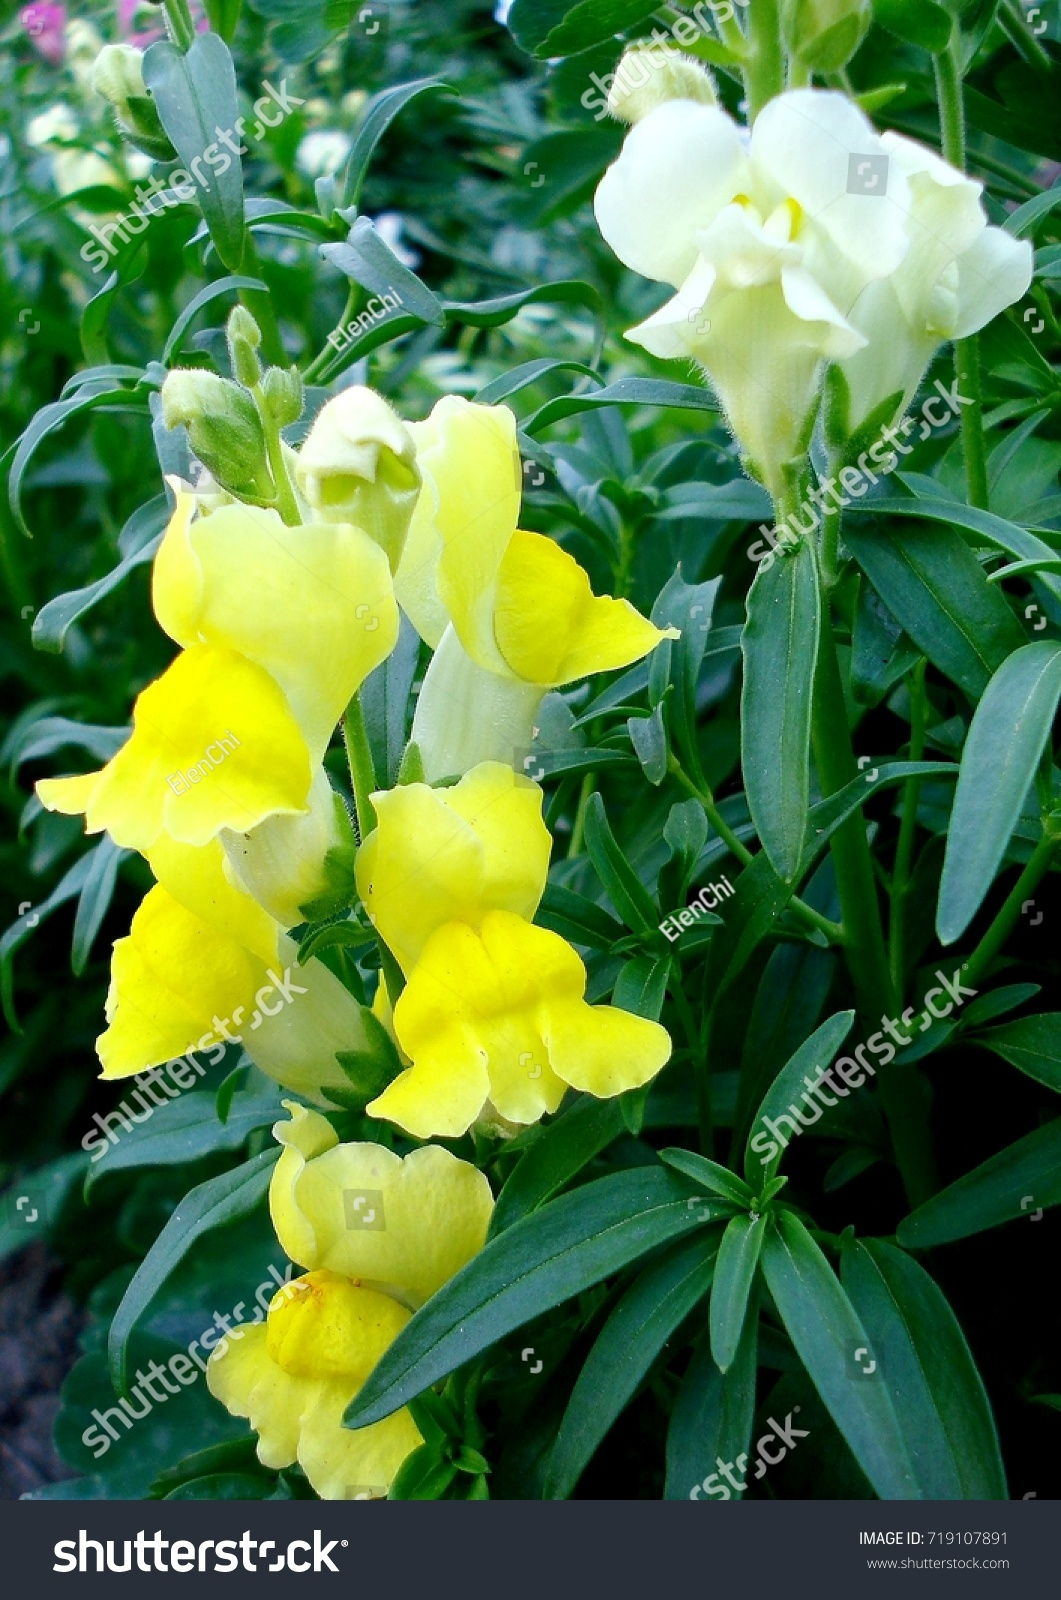 Yellow White Flowers Snapdragon Antirrhinum Closeup Stock Photo